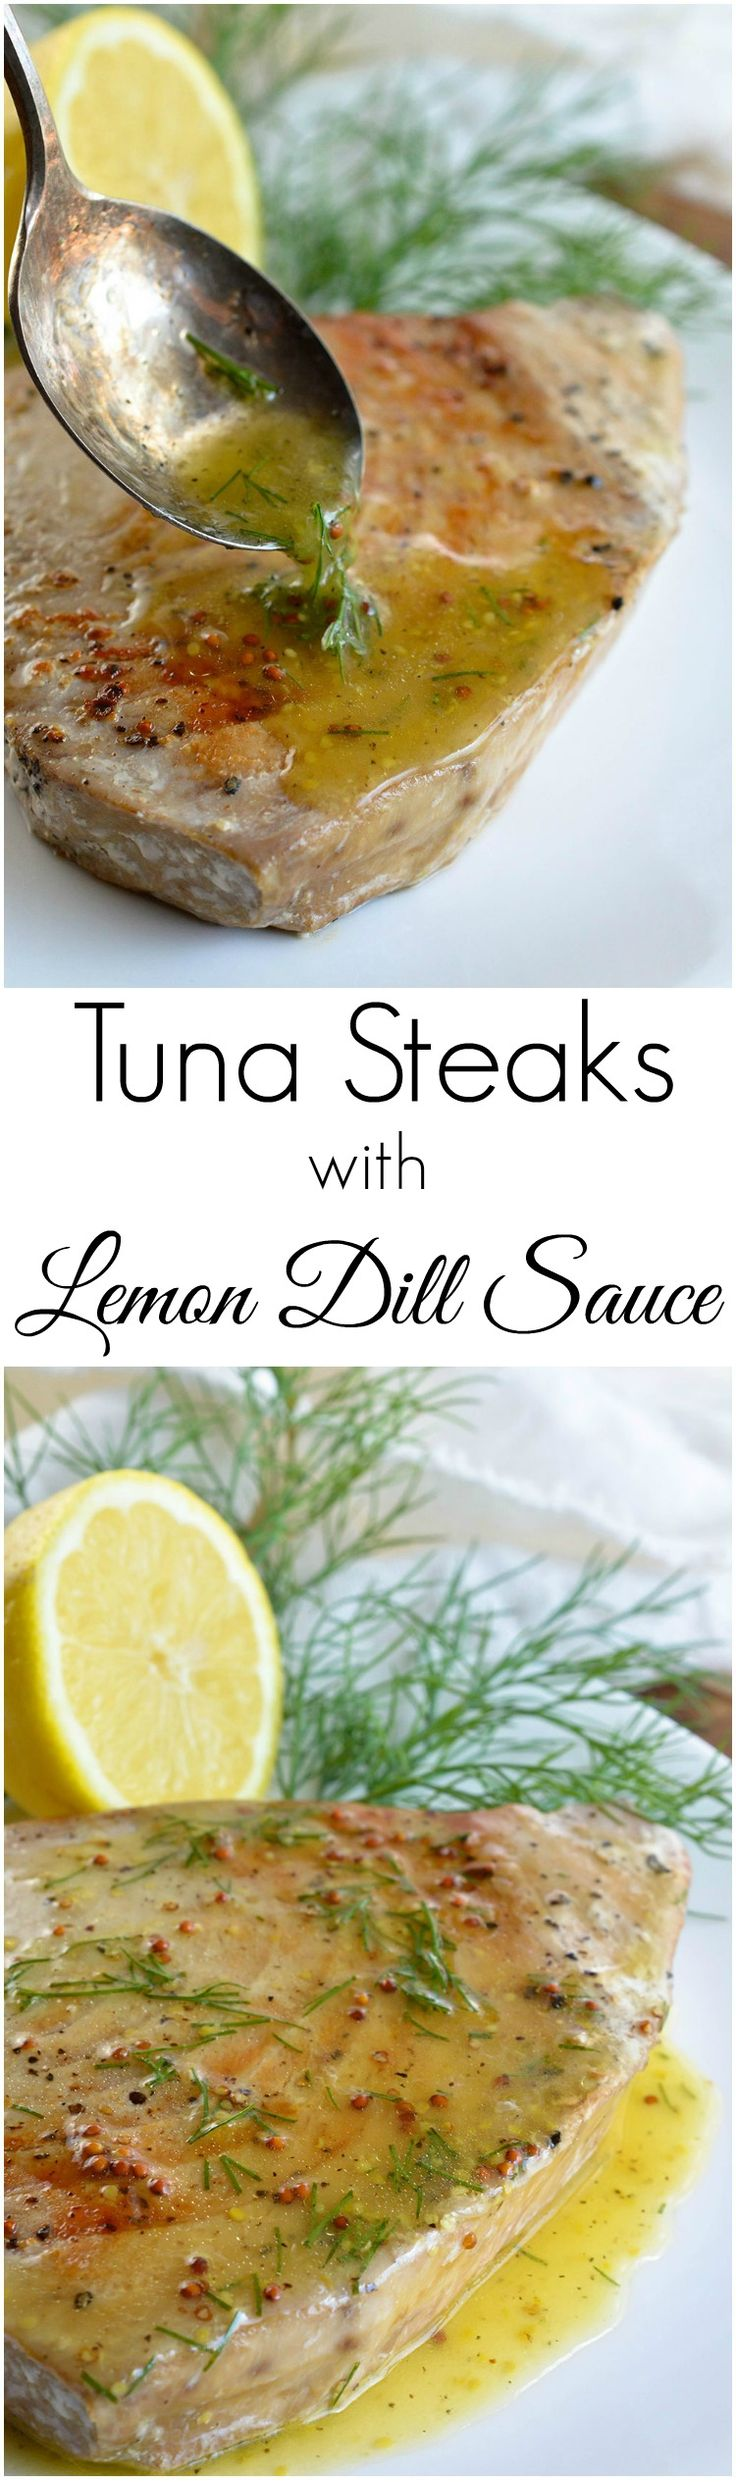 Pan Seared Tuna Steak with Lemon Dill Sauce makes a flavorful and healthy meal. This nutritious lunch or dinner is full of protein and ready in about 10 minutes! ‪#‎WeightWatchers‬ ‪#‎WWSponsored‬ @weightwatchers